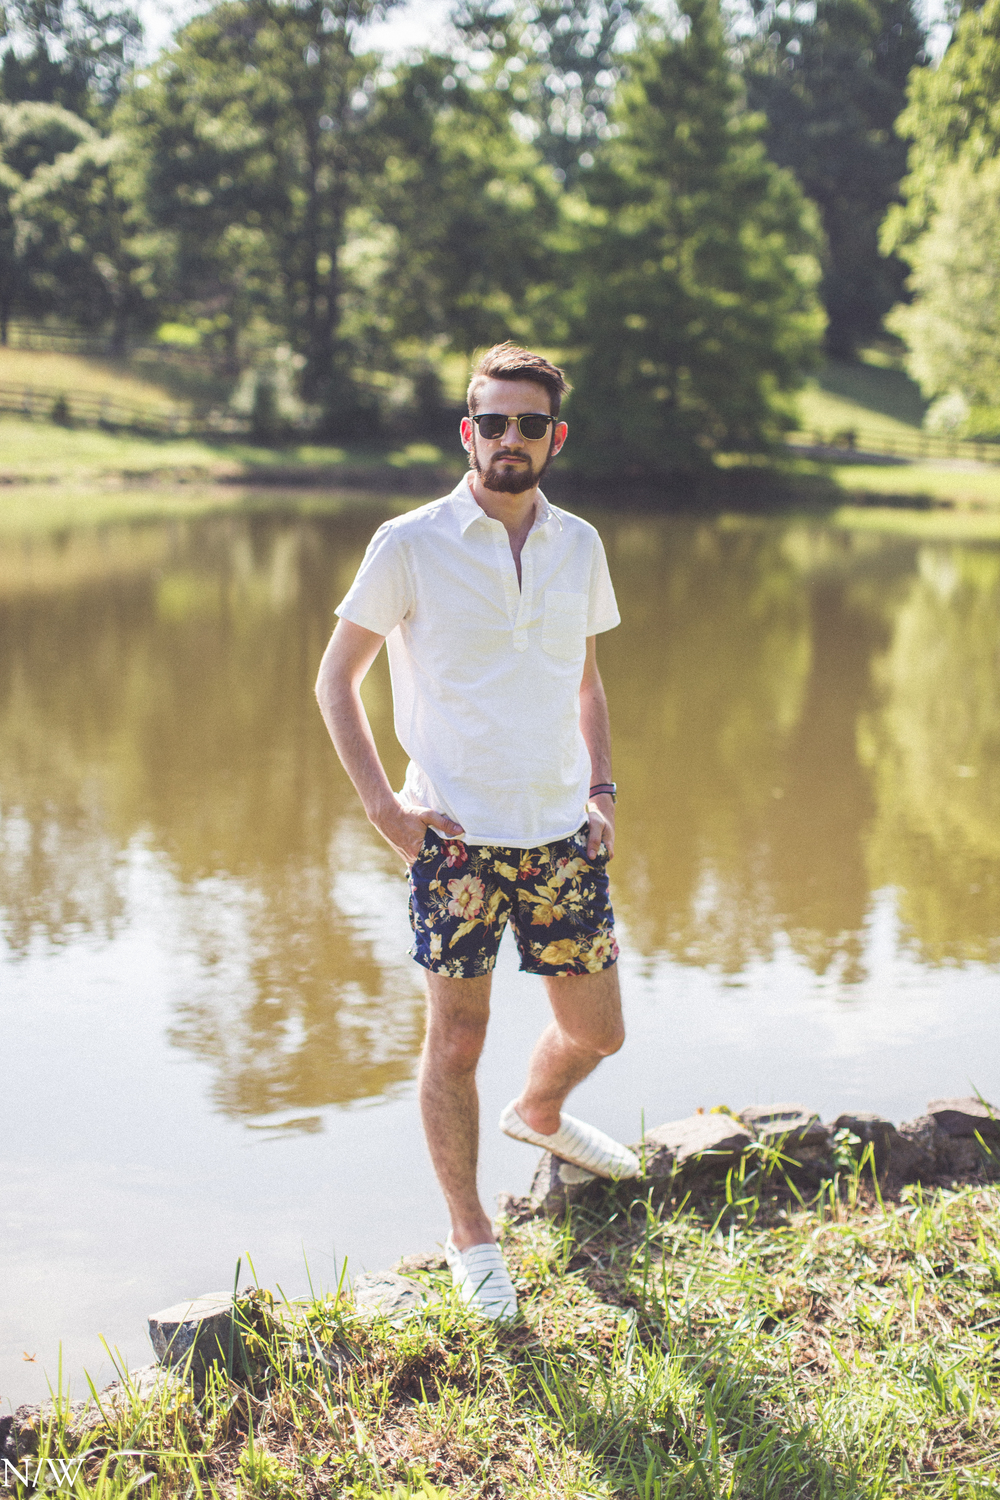 Shoes, Shirt, Swim Trunks: Jcrew